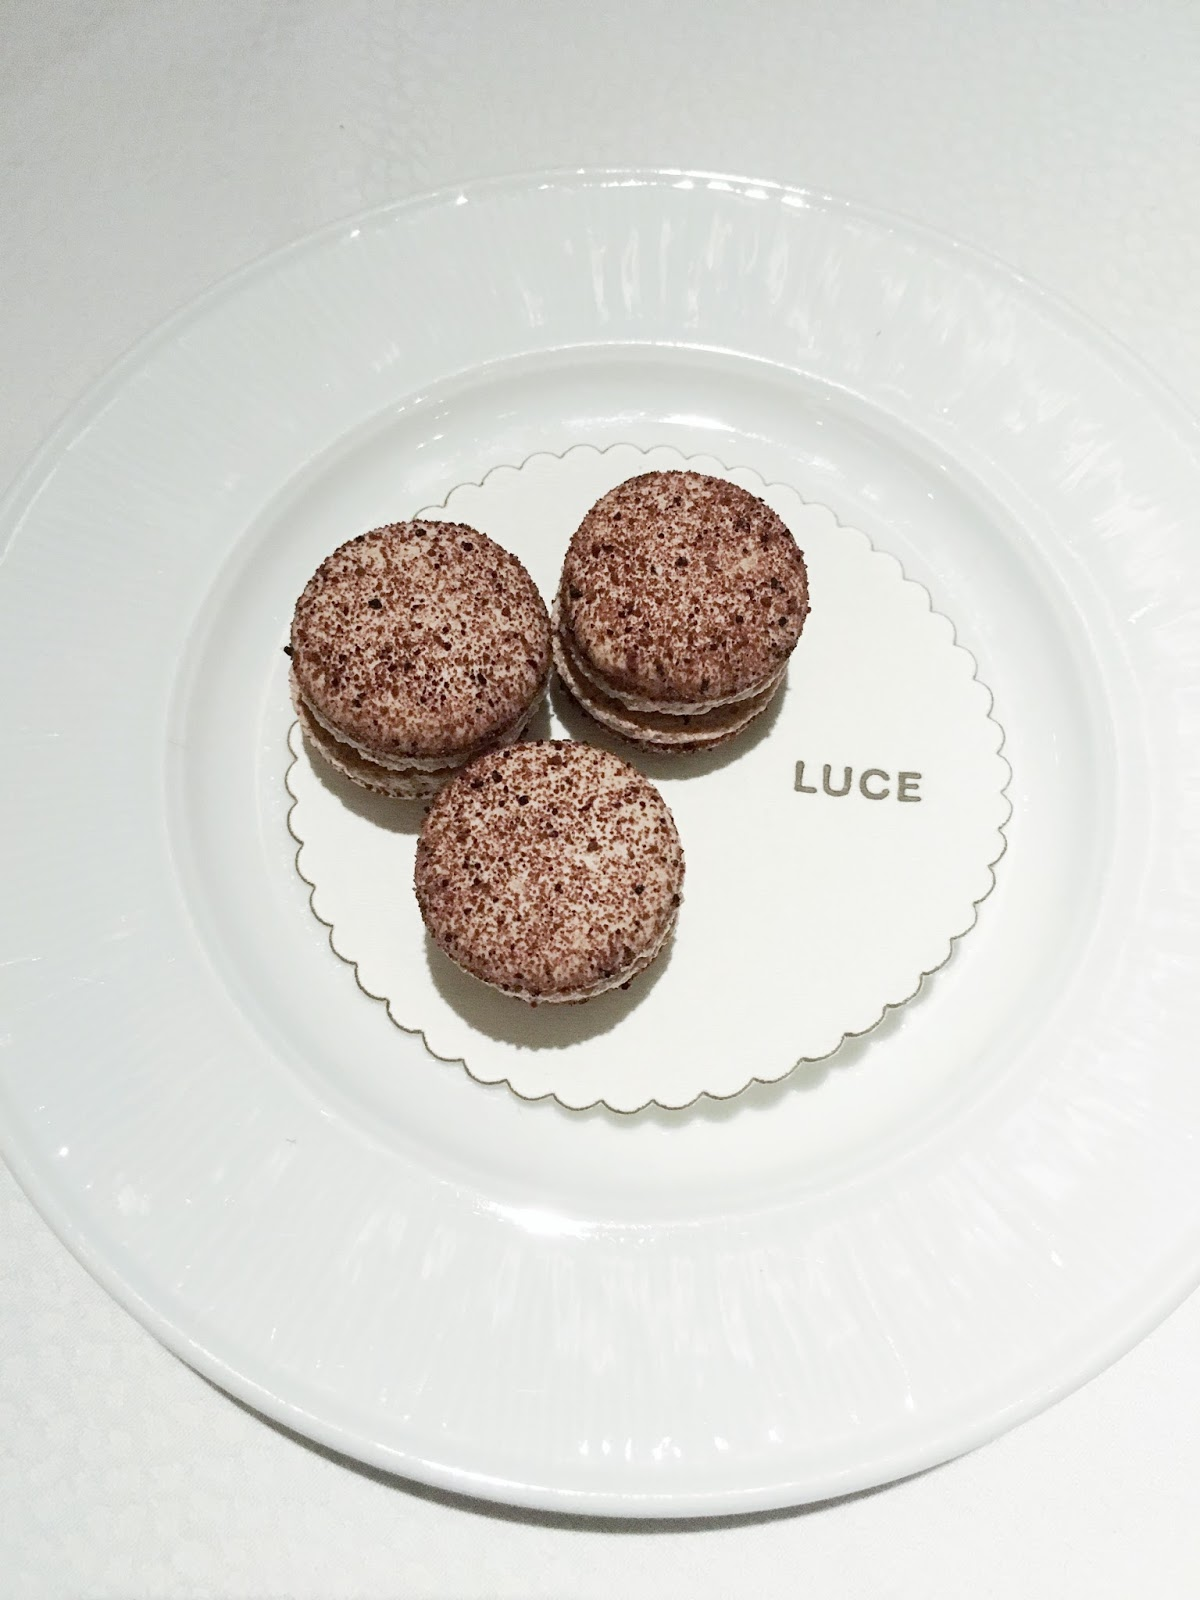 luce-restaurant-san-francisco-michelin